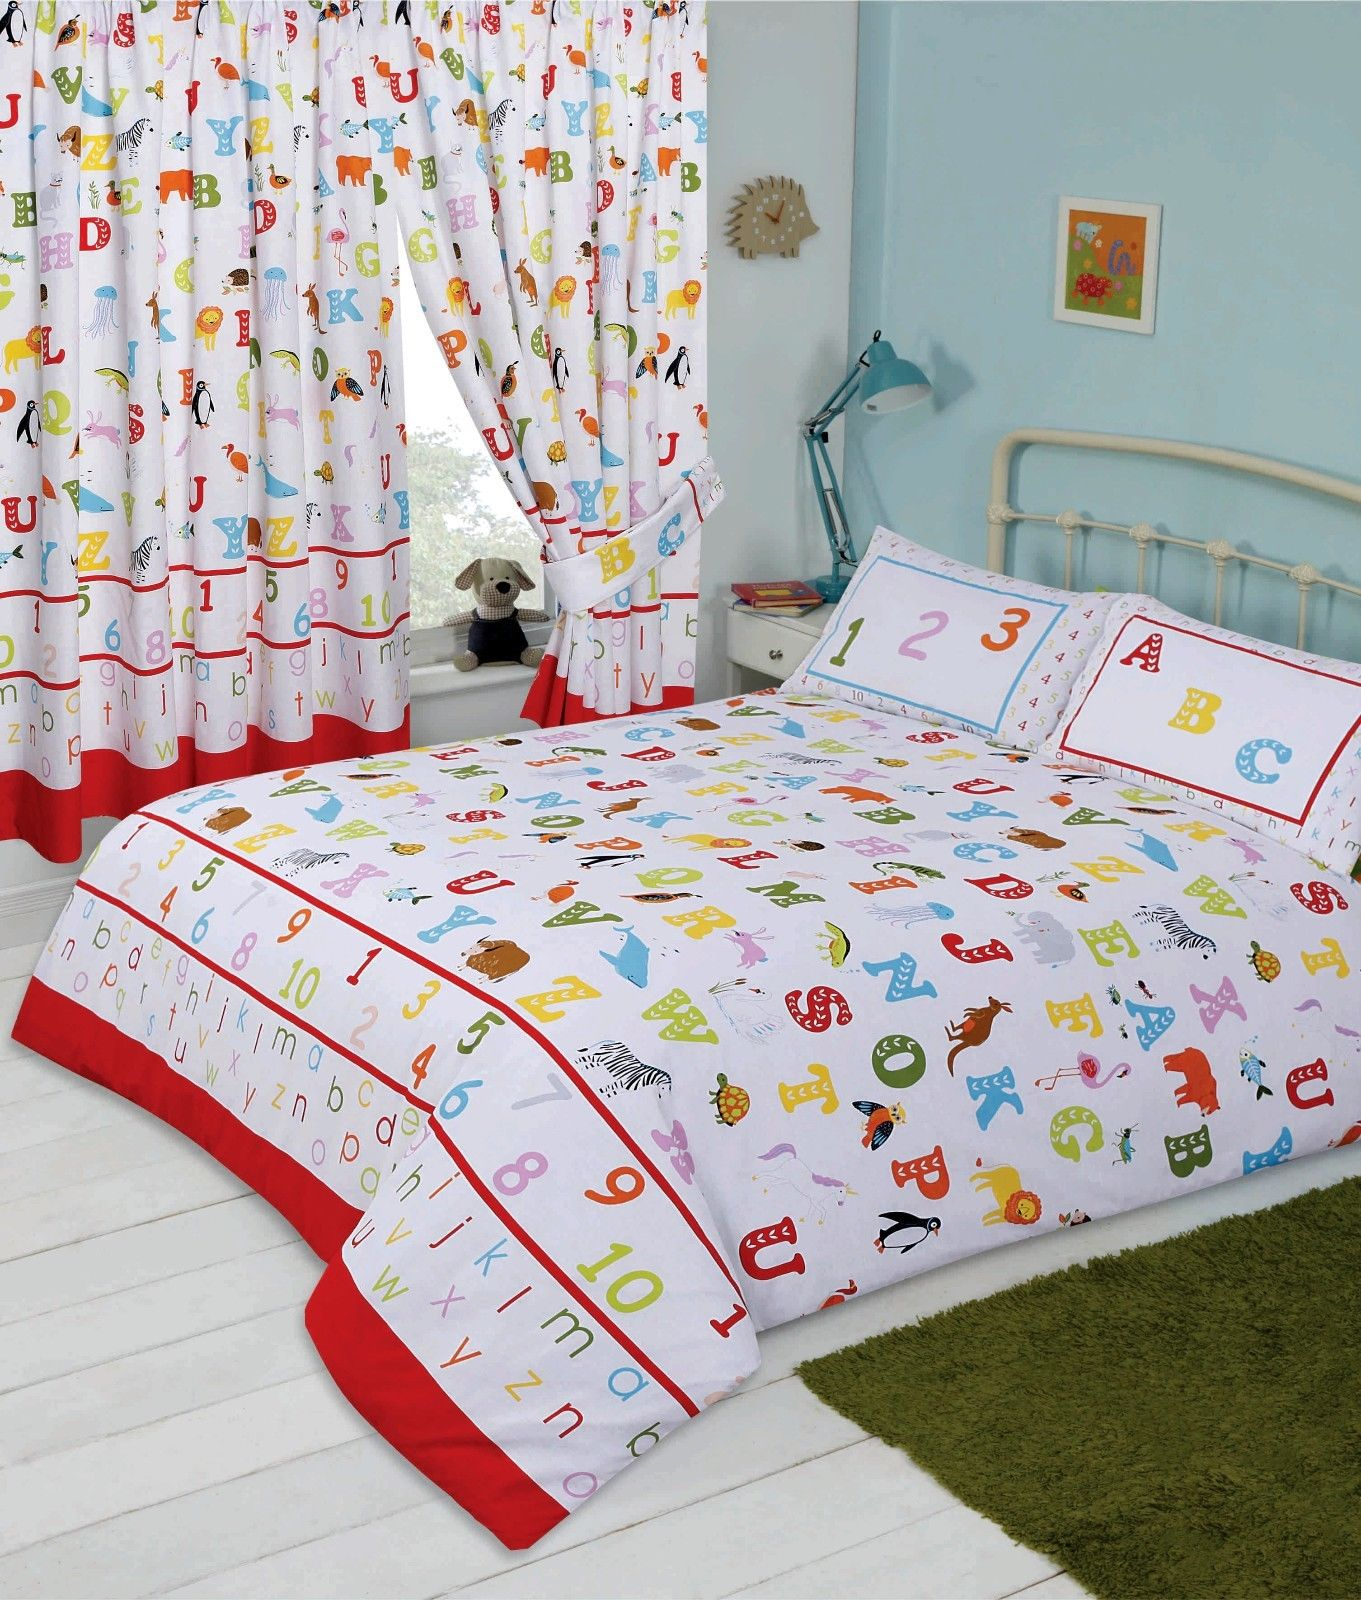 Kids Childrens Bedroom Alphabet Abc Letters Numbers Animals Design Bedding Or Curtains